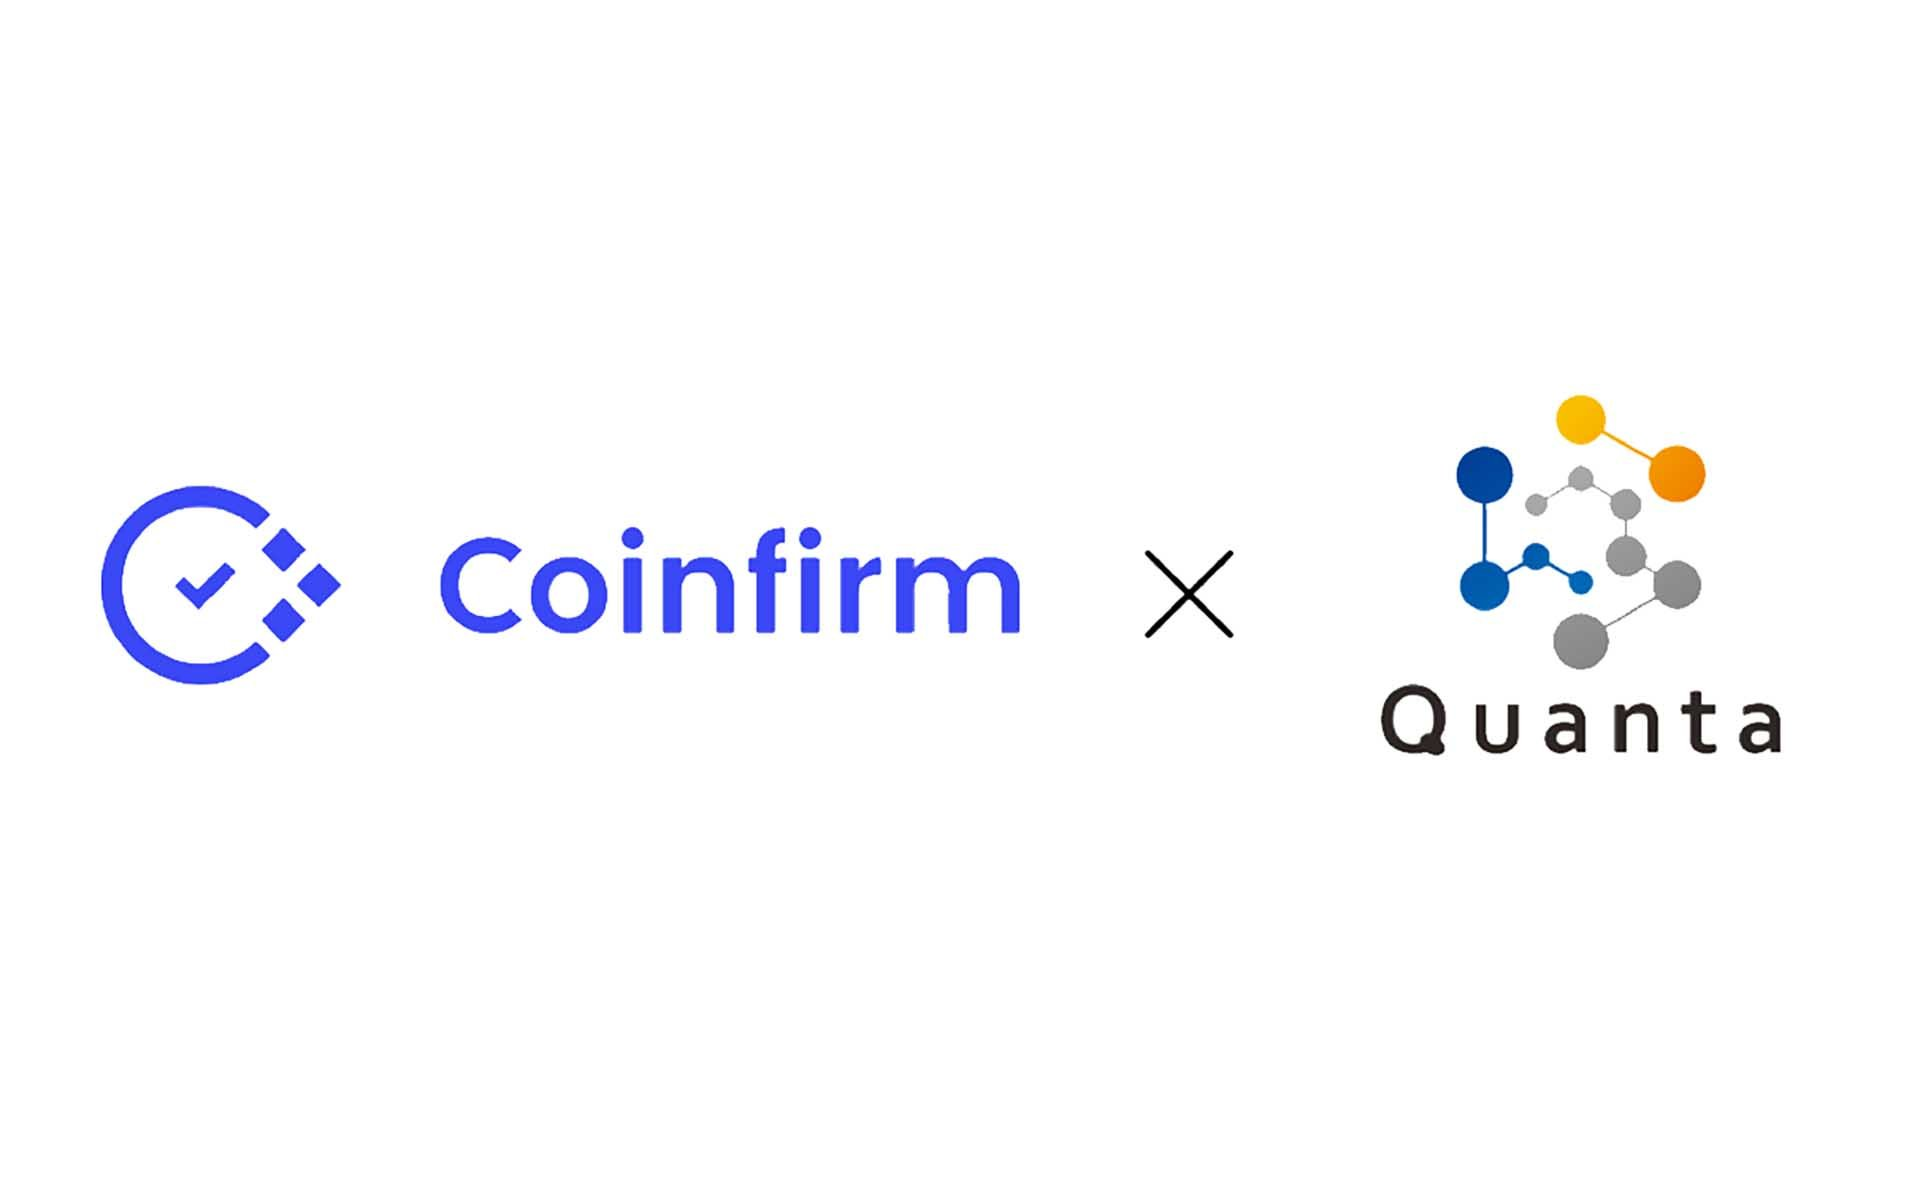 Quanta Partners with Coinfirm to Bring Compliance and Mass Adoption to Their Blockchain Lottery Platform